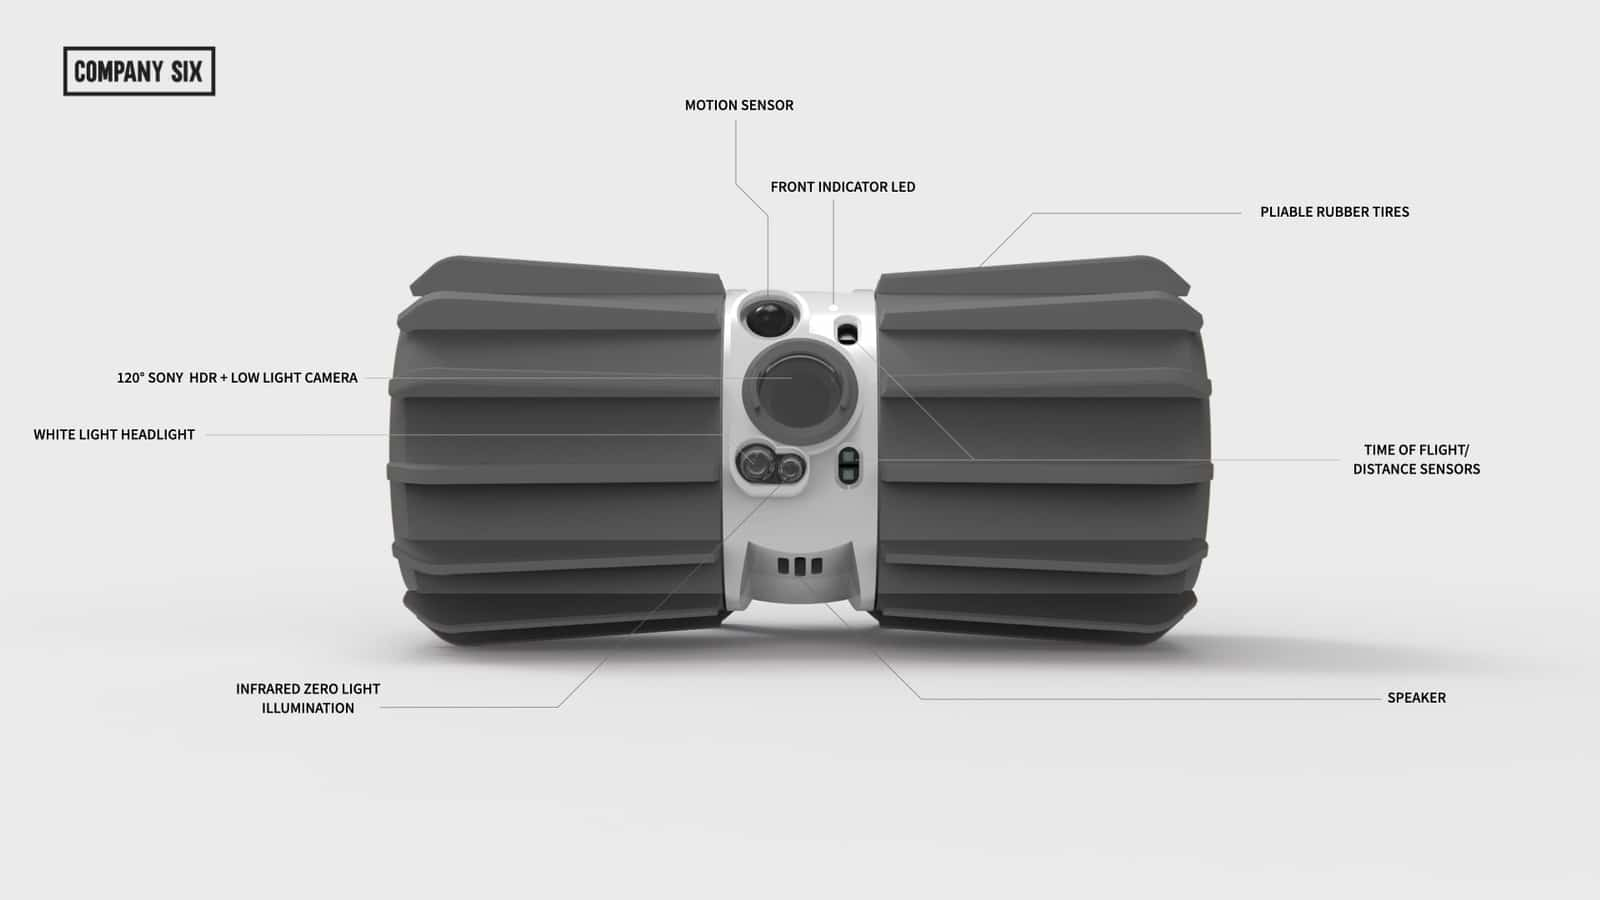 Anatomy of the ReadySight robot (image courtesy of Company Six)